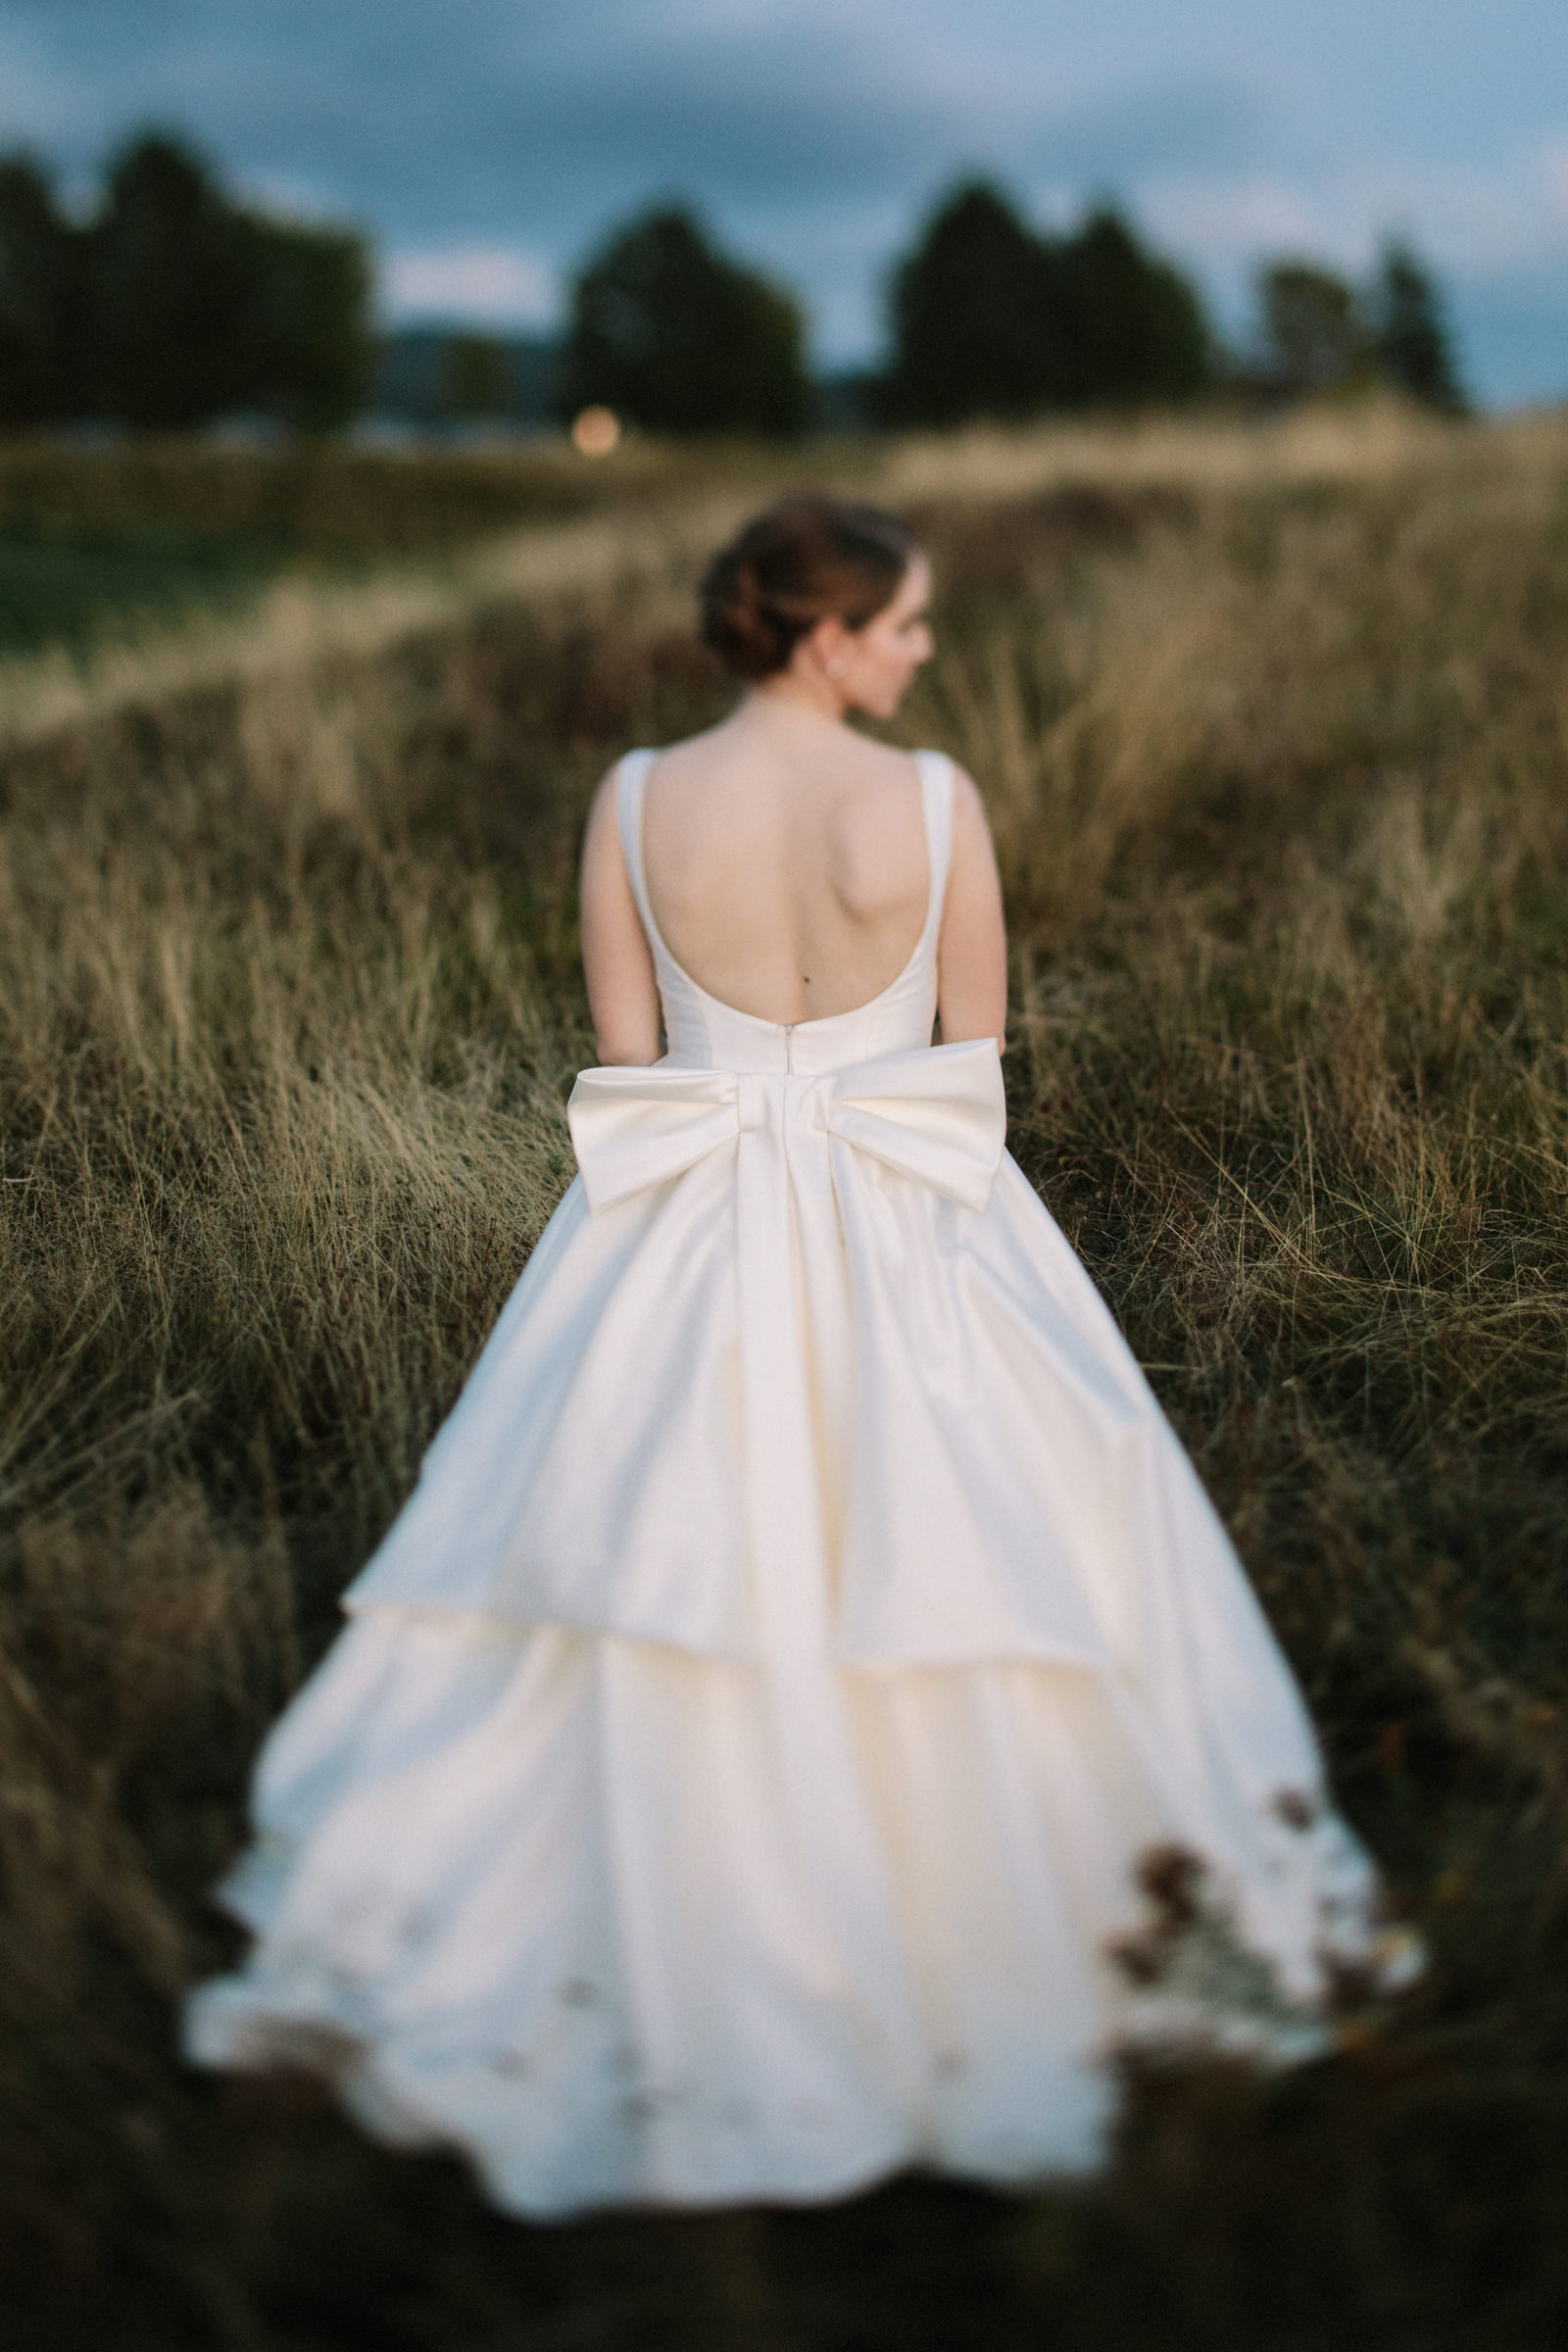 Bride outdoors in backless satin gown with big bow - photo by Jonas Seaman Photography